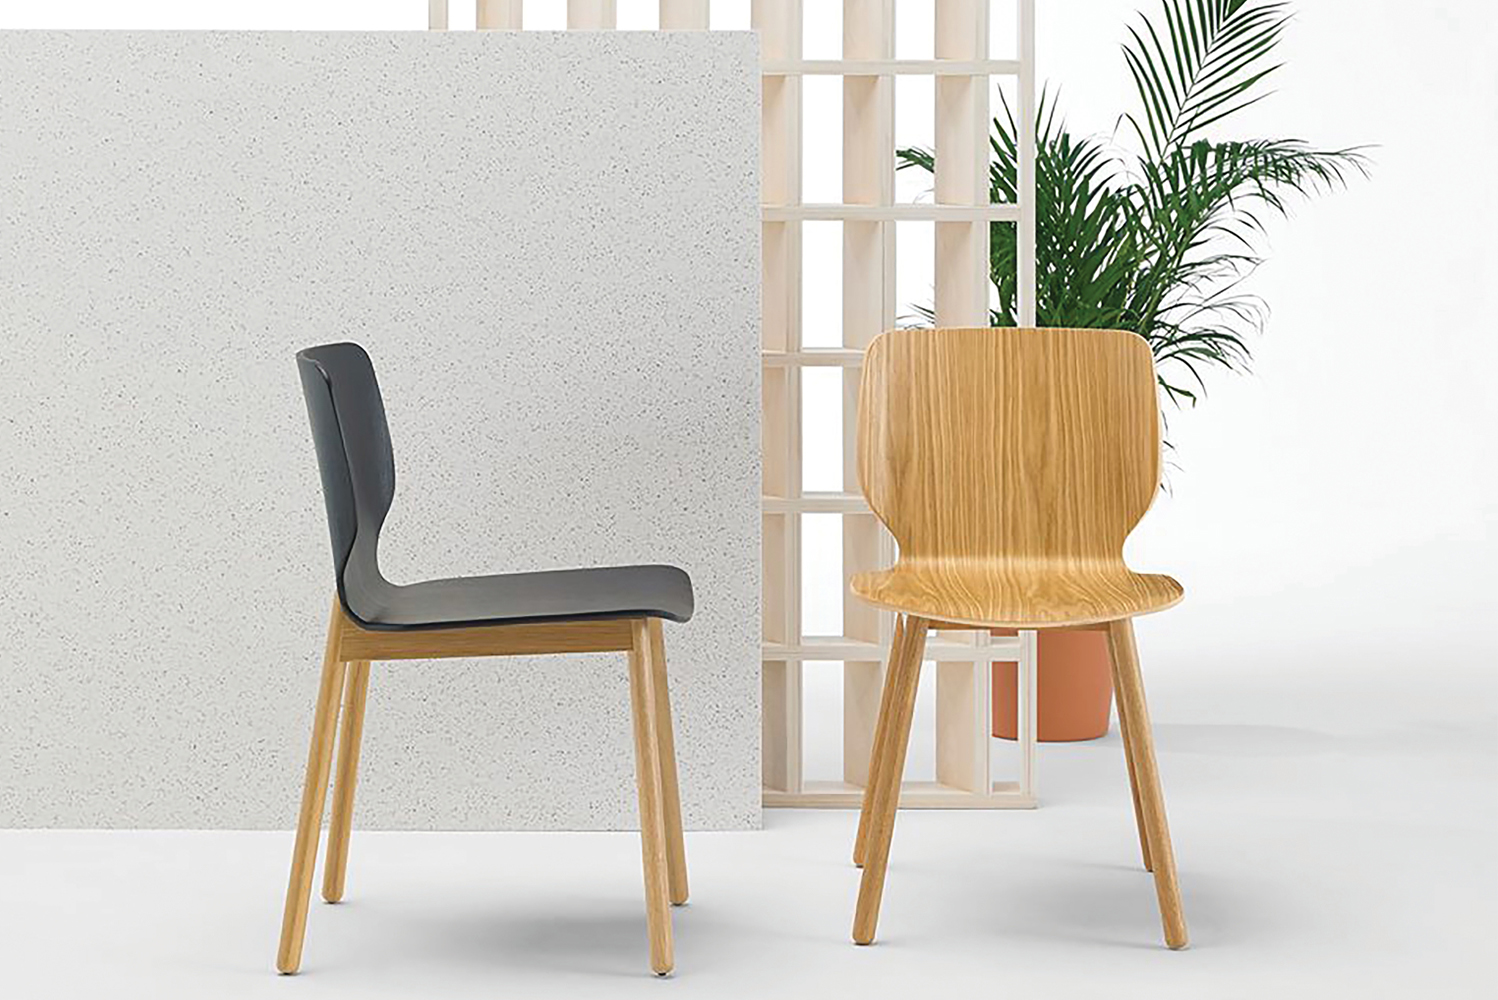 Introducing Nim, a collection of chairs combining crafted wood with contrast-stitched upholstery.